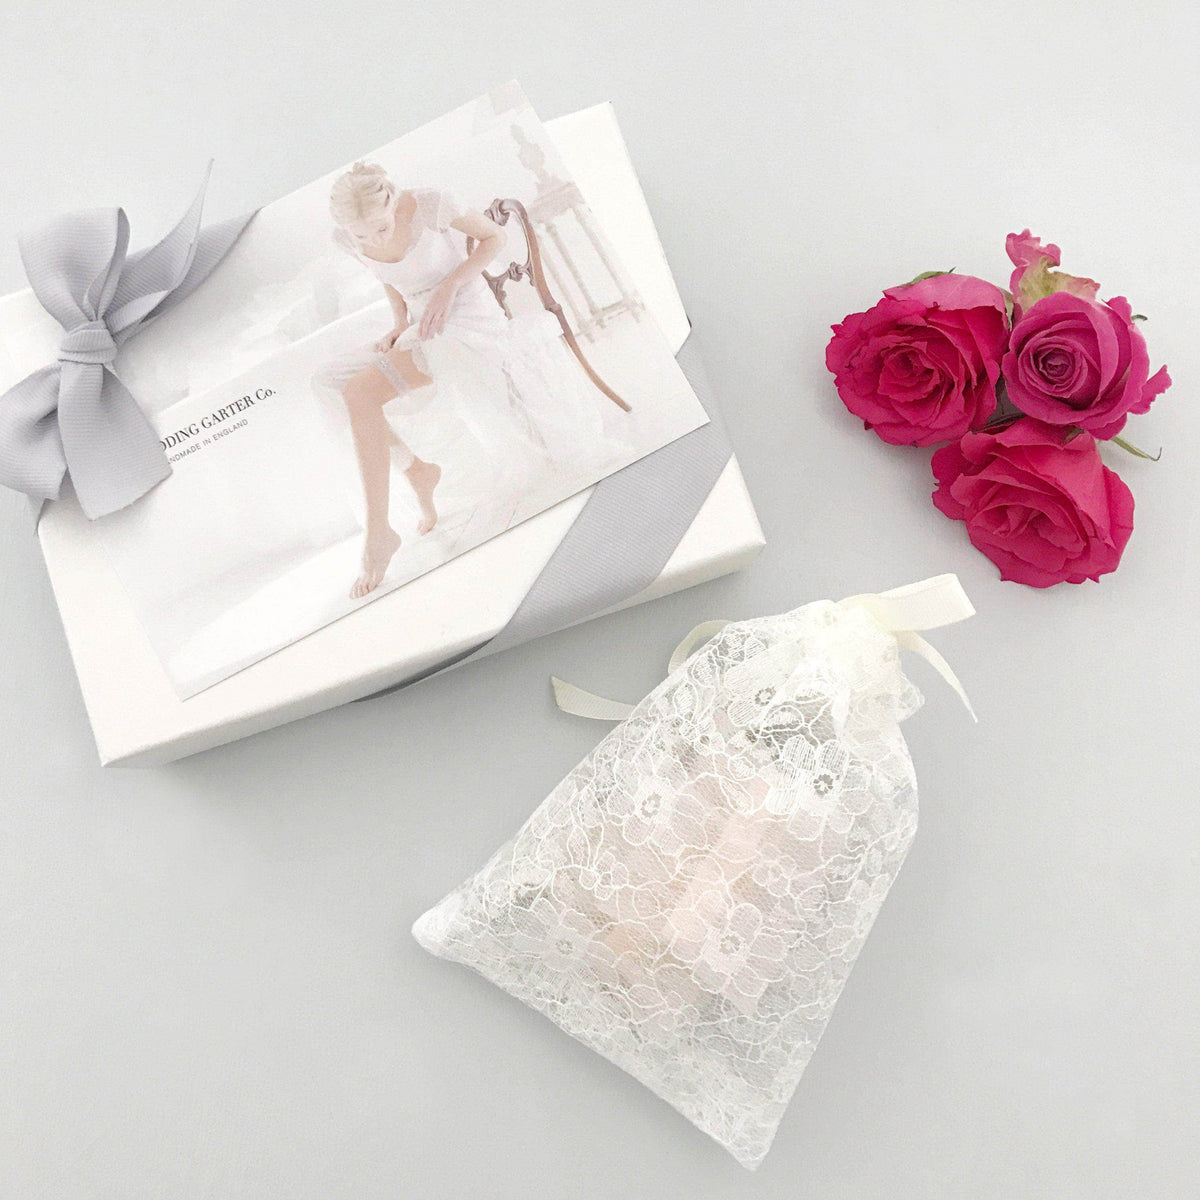 Wedding Garter Off-white tulle wedding garter with delicate lace motif - 'Margarette'